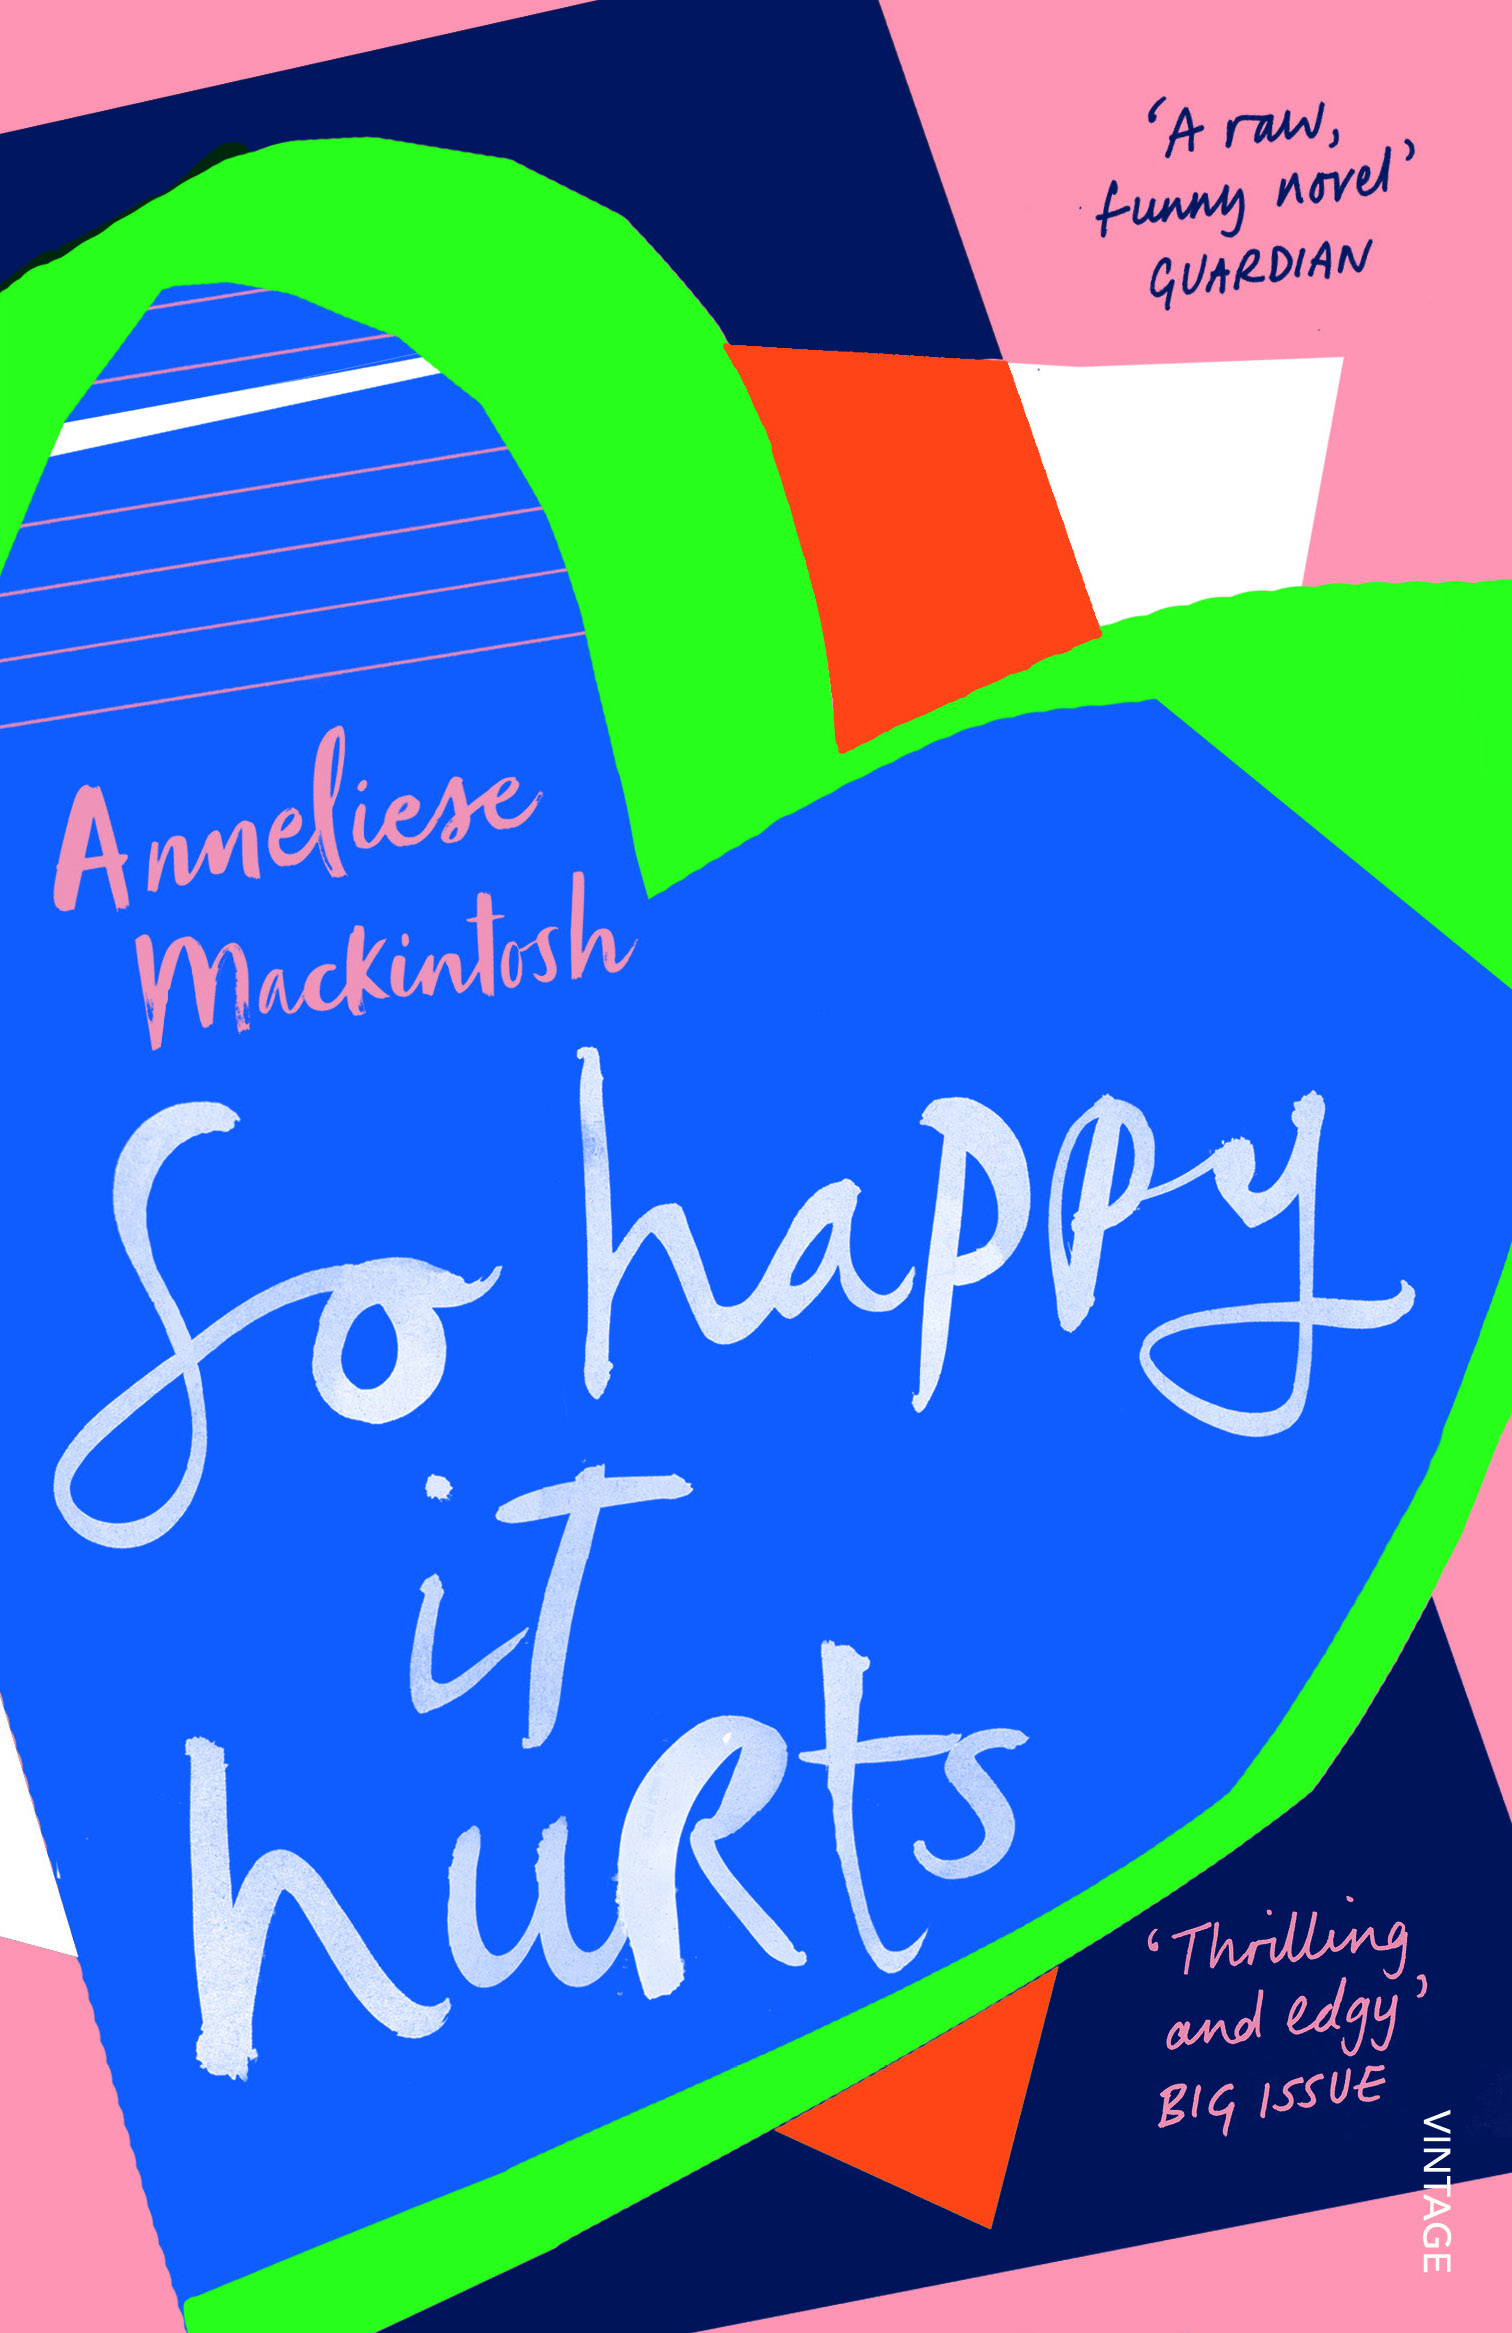 SO HAPPY IT HURTS  Literary, 224 pages Cape, July 2017   'I want to be a good person. And I want to be happy. So happy it hurts. I need you to help me with that.'   Ottila McGregor is thirty years old and has decided it's time to sort her life out. She's going to quit drinking, stop cheating, and finally find true happiness. Easy, right?  Of course not.